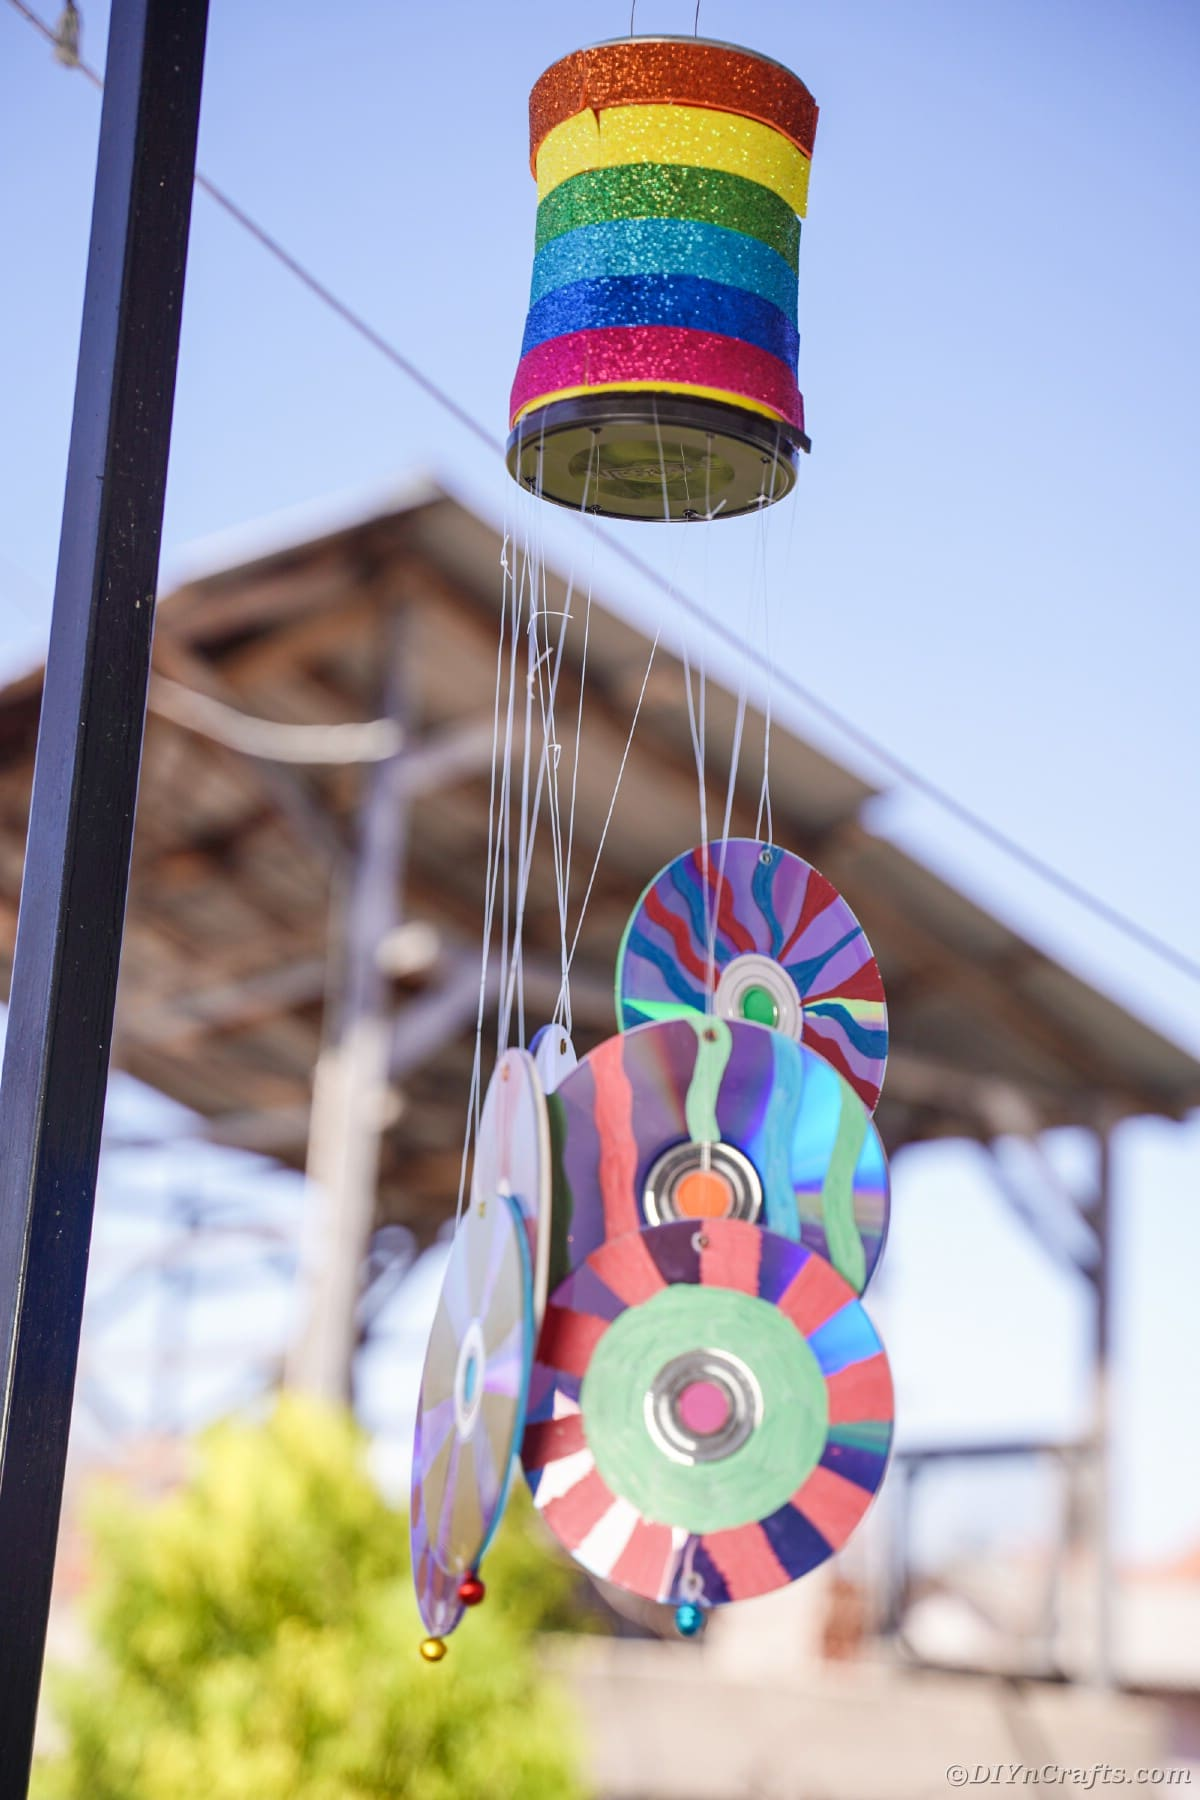 Rainbow CD wind chime hanging outside